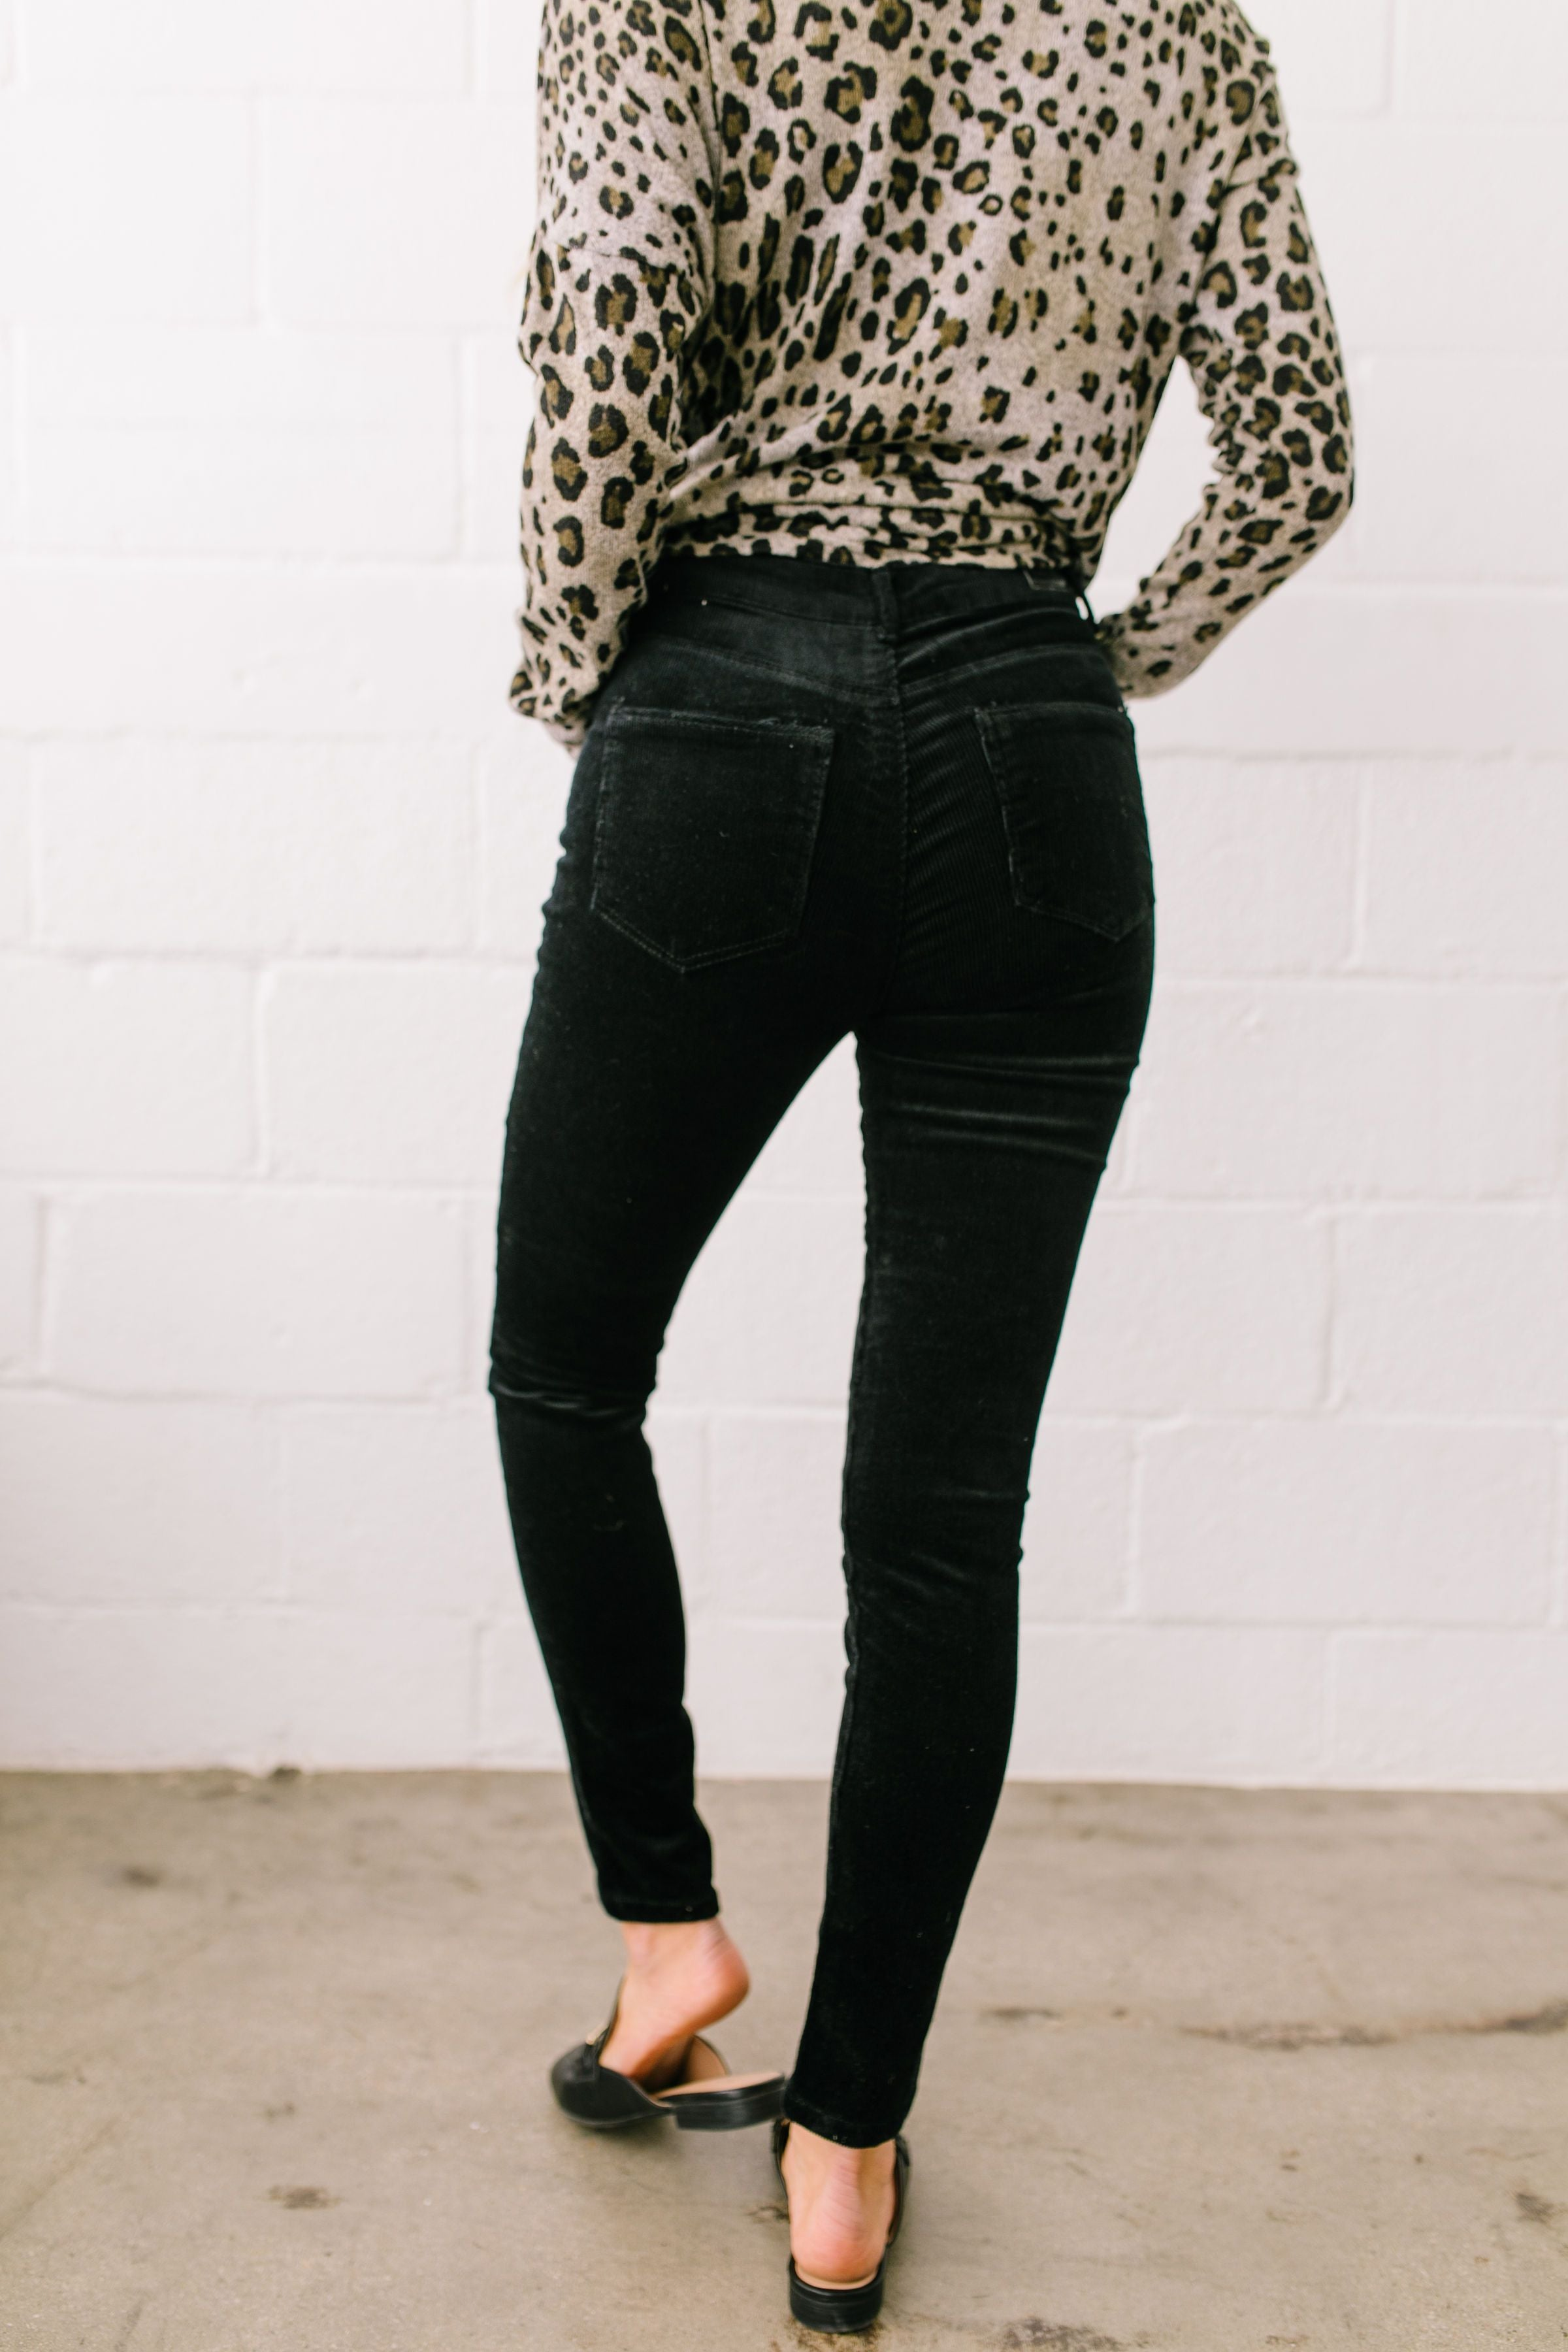 Classic Corduroy Skinny Pants - ALL SALES FINAL